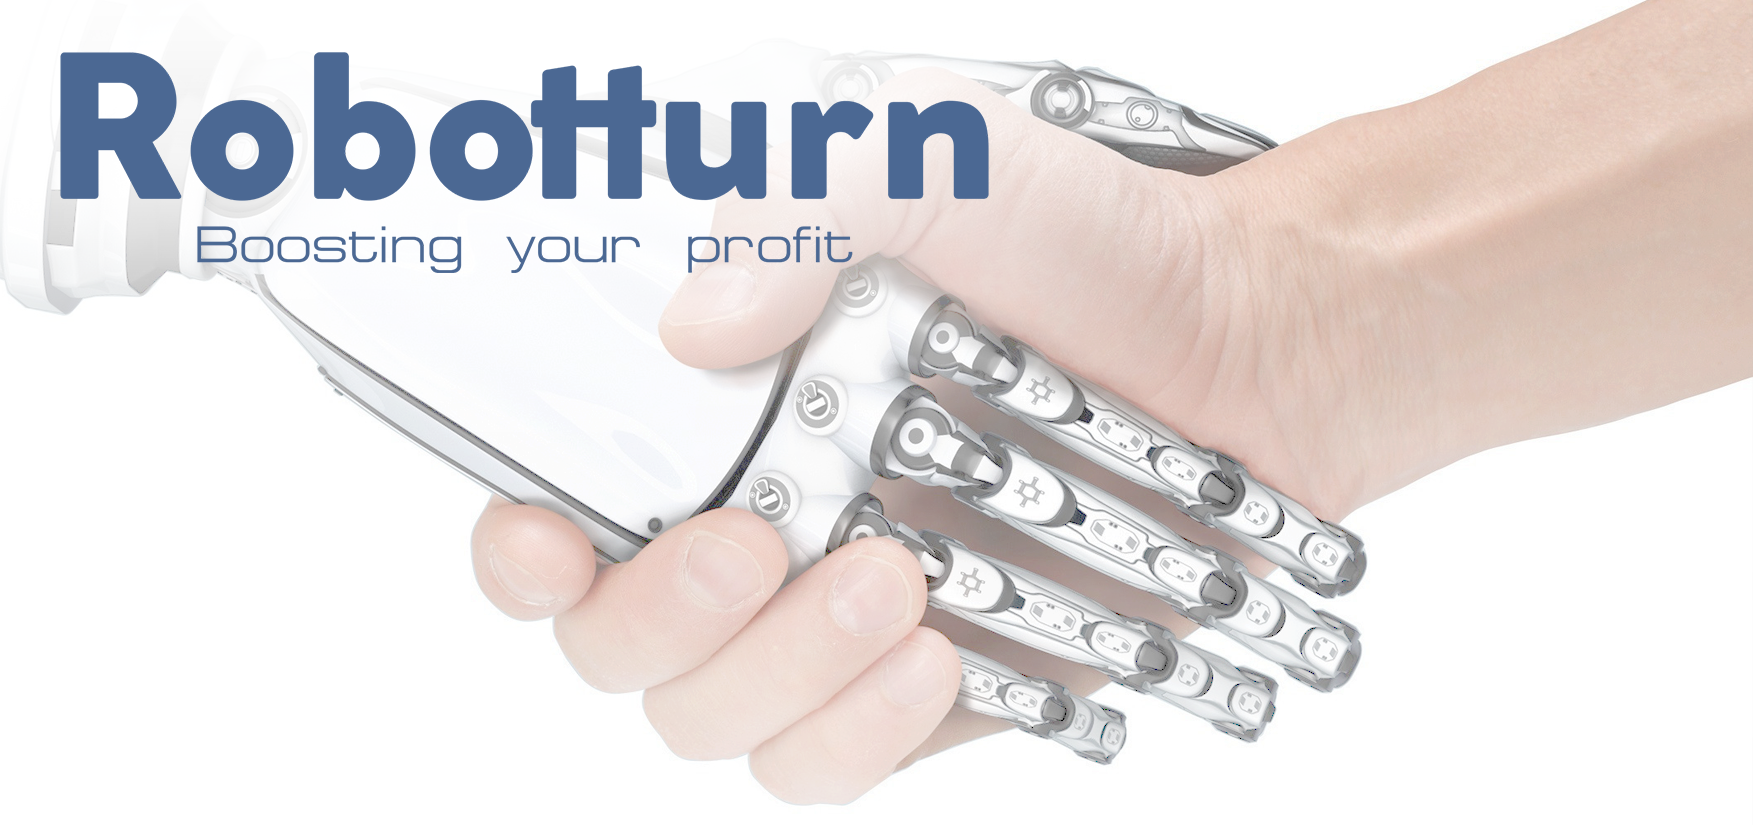 GET TO NEXT LEVEL WITH ROBOTTURN